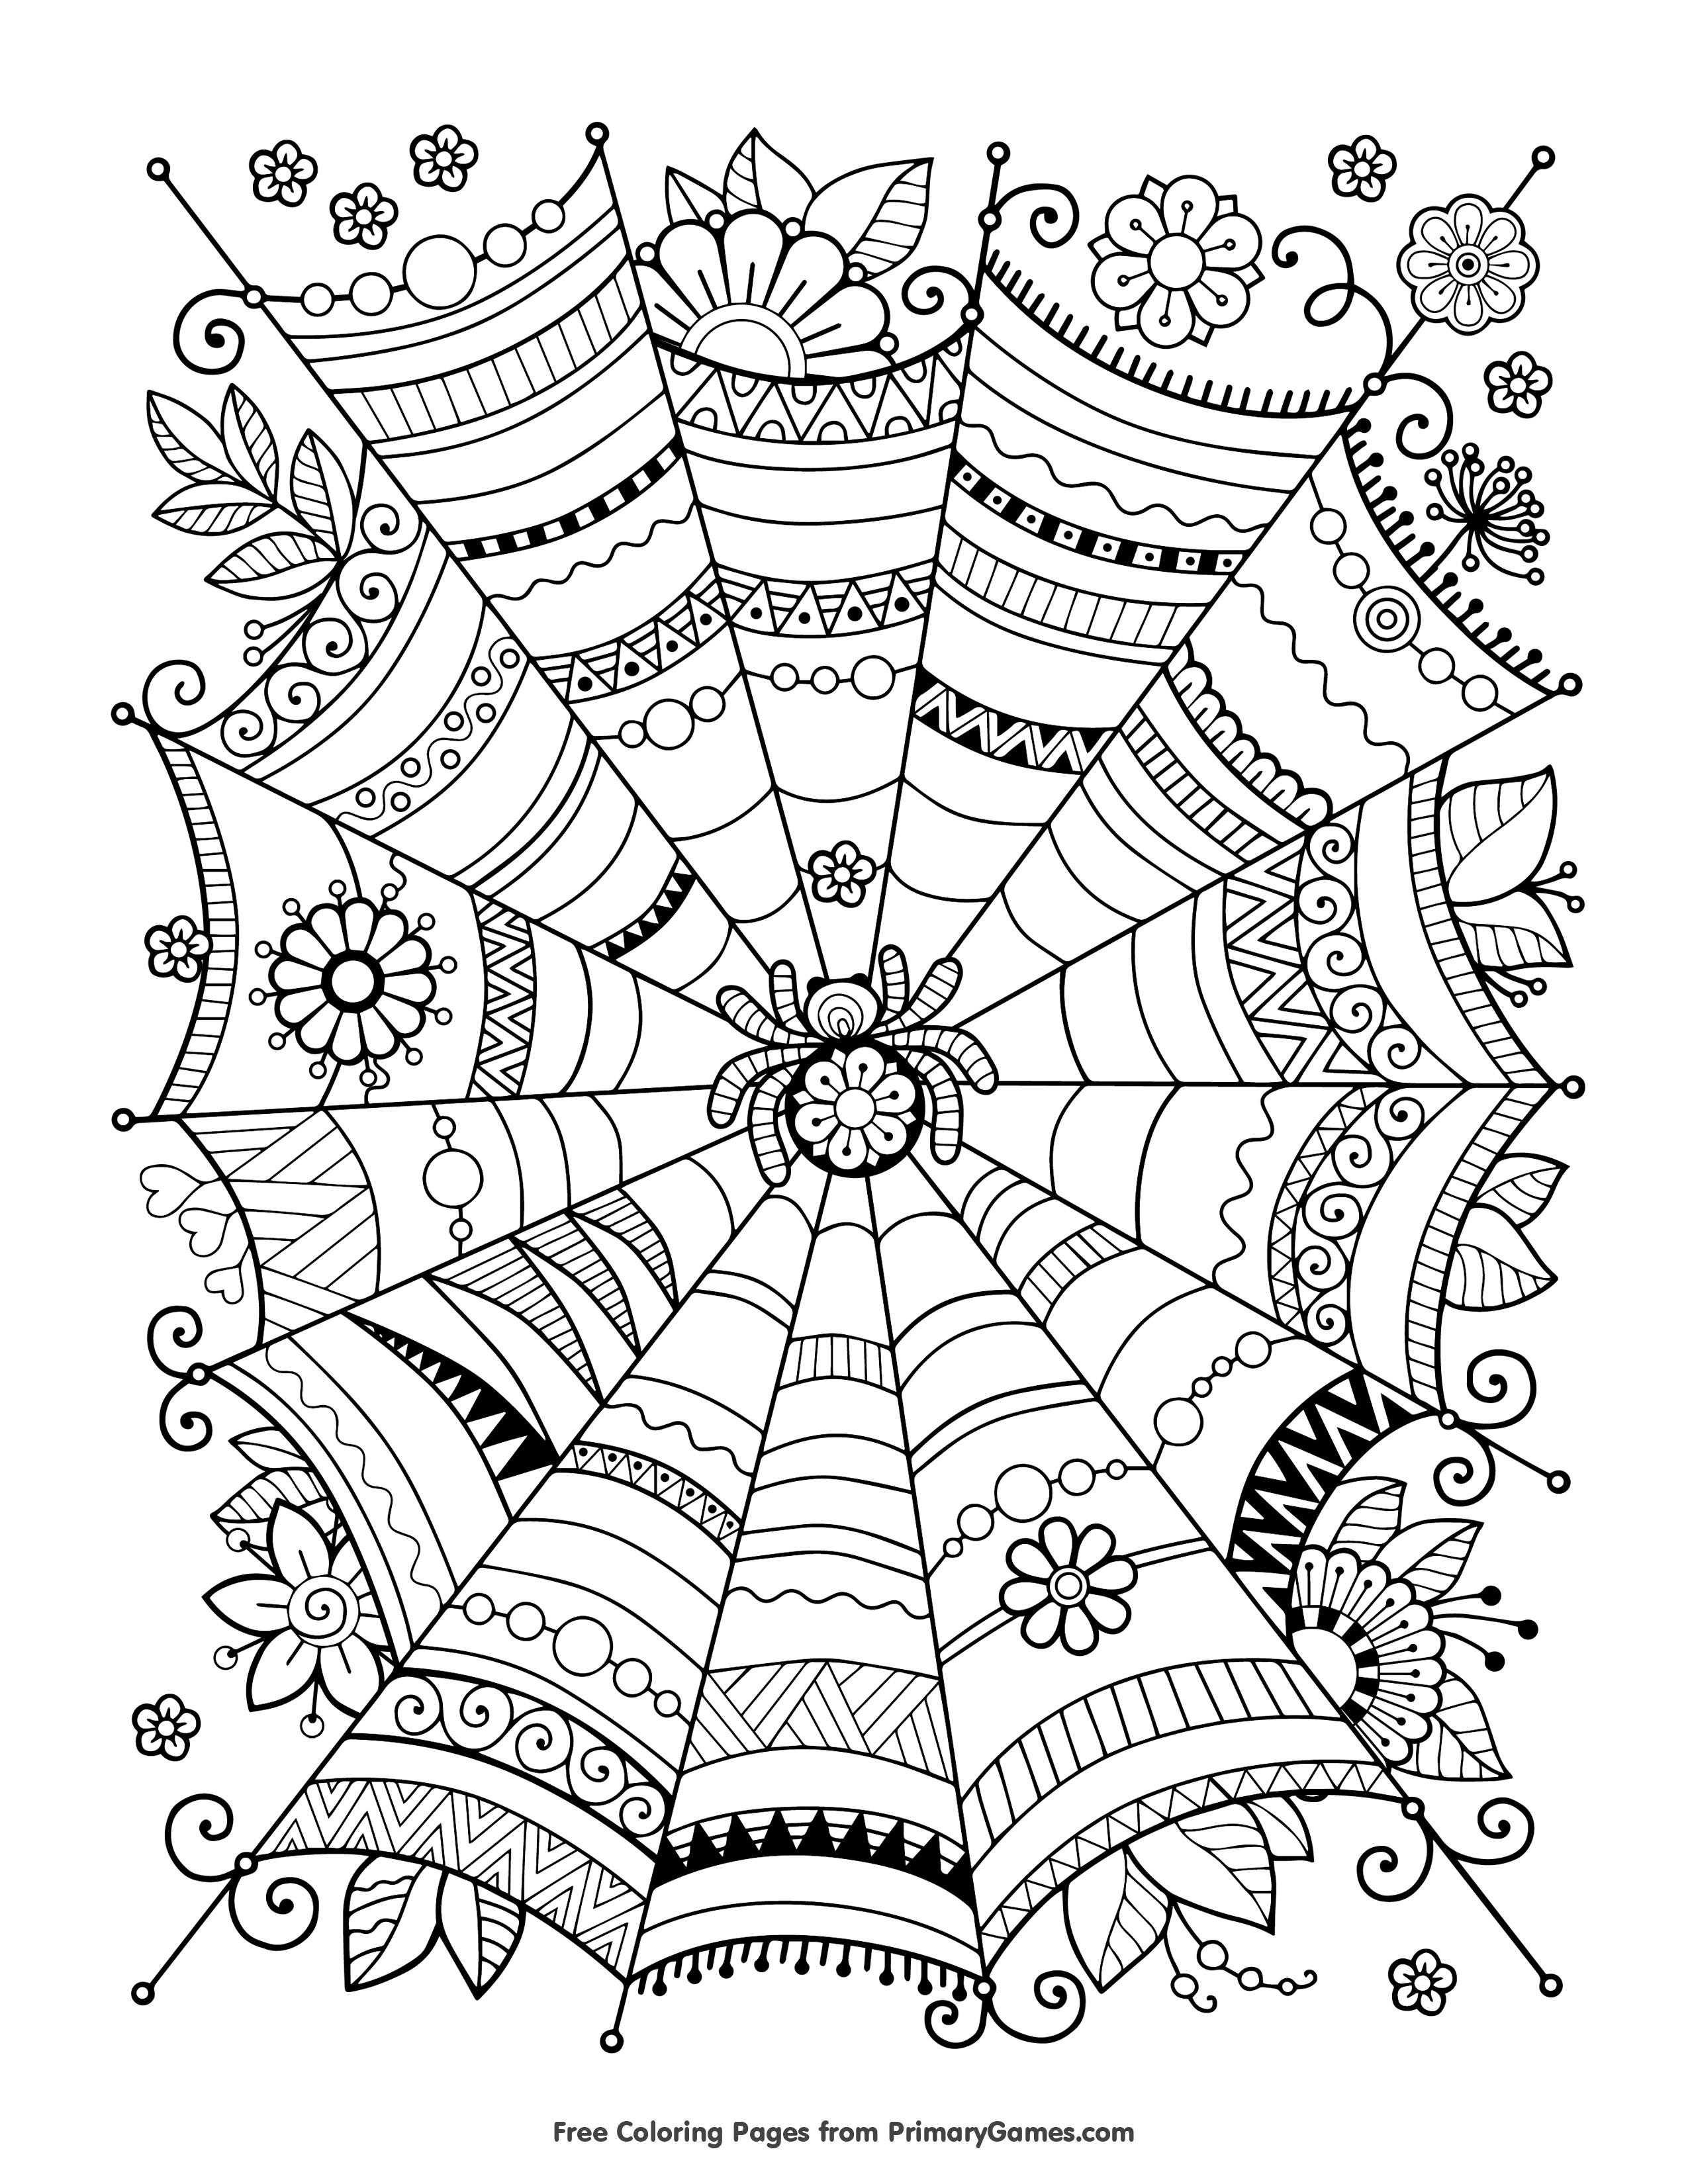 Free Halloween Coloring Pages For Adults & Kids - Happiness Is Homemade - Free Printable Coloring Pages For Adults